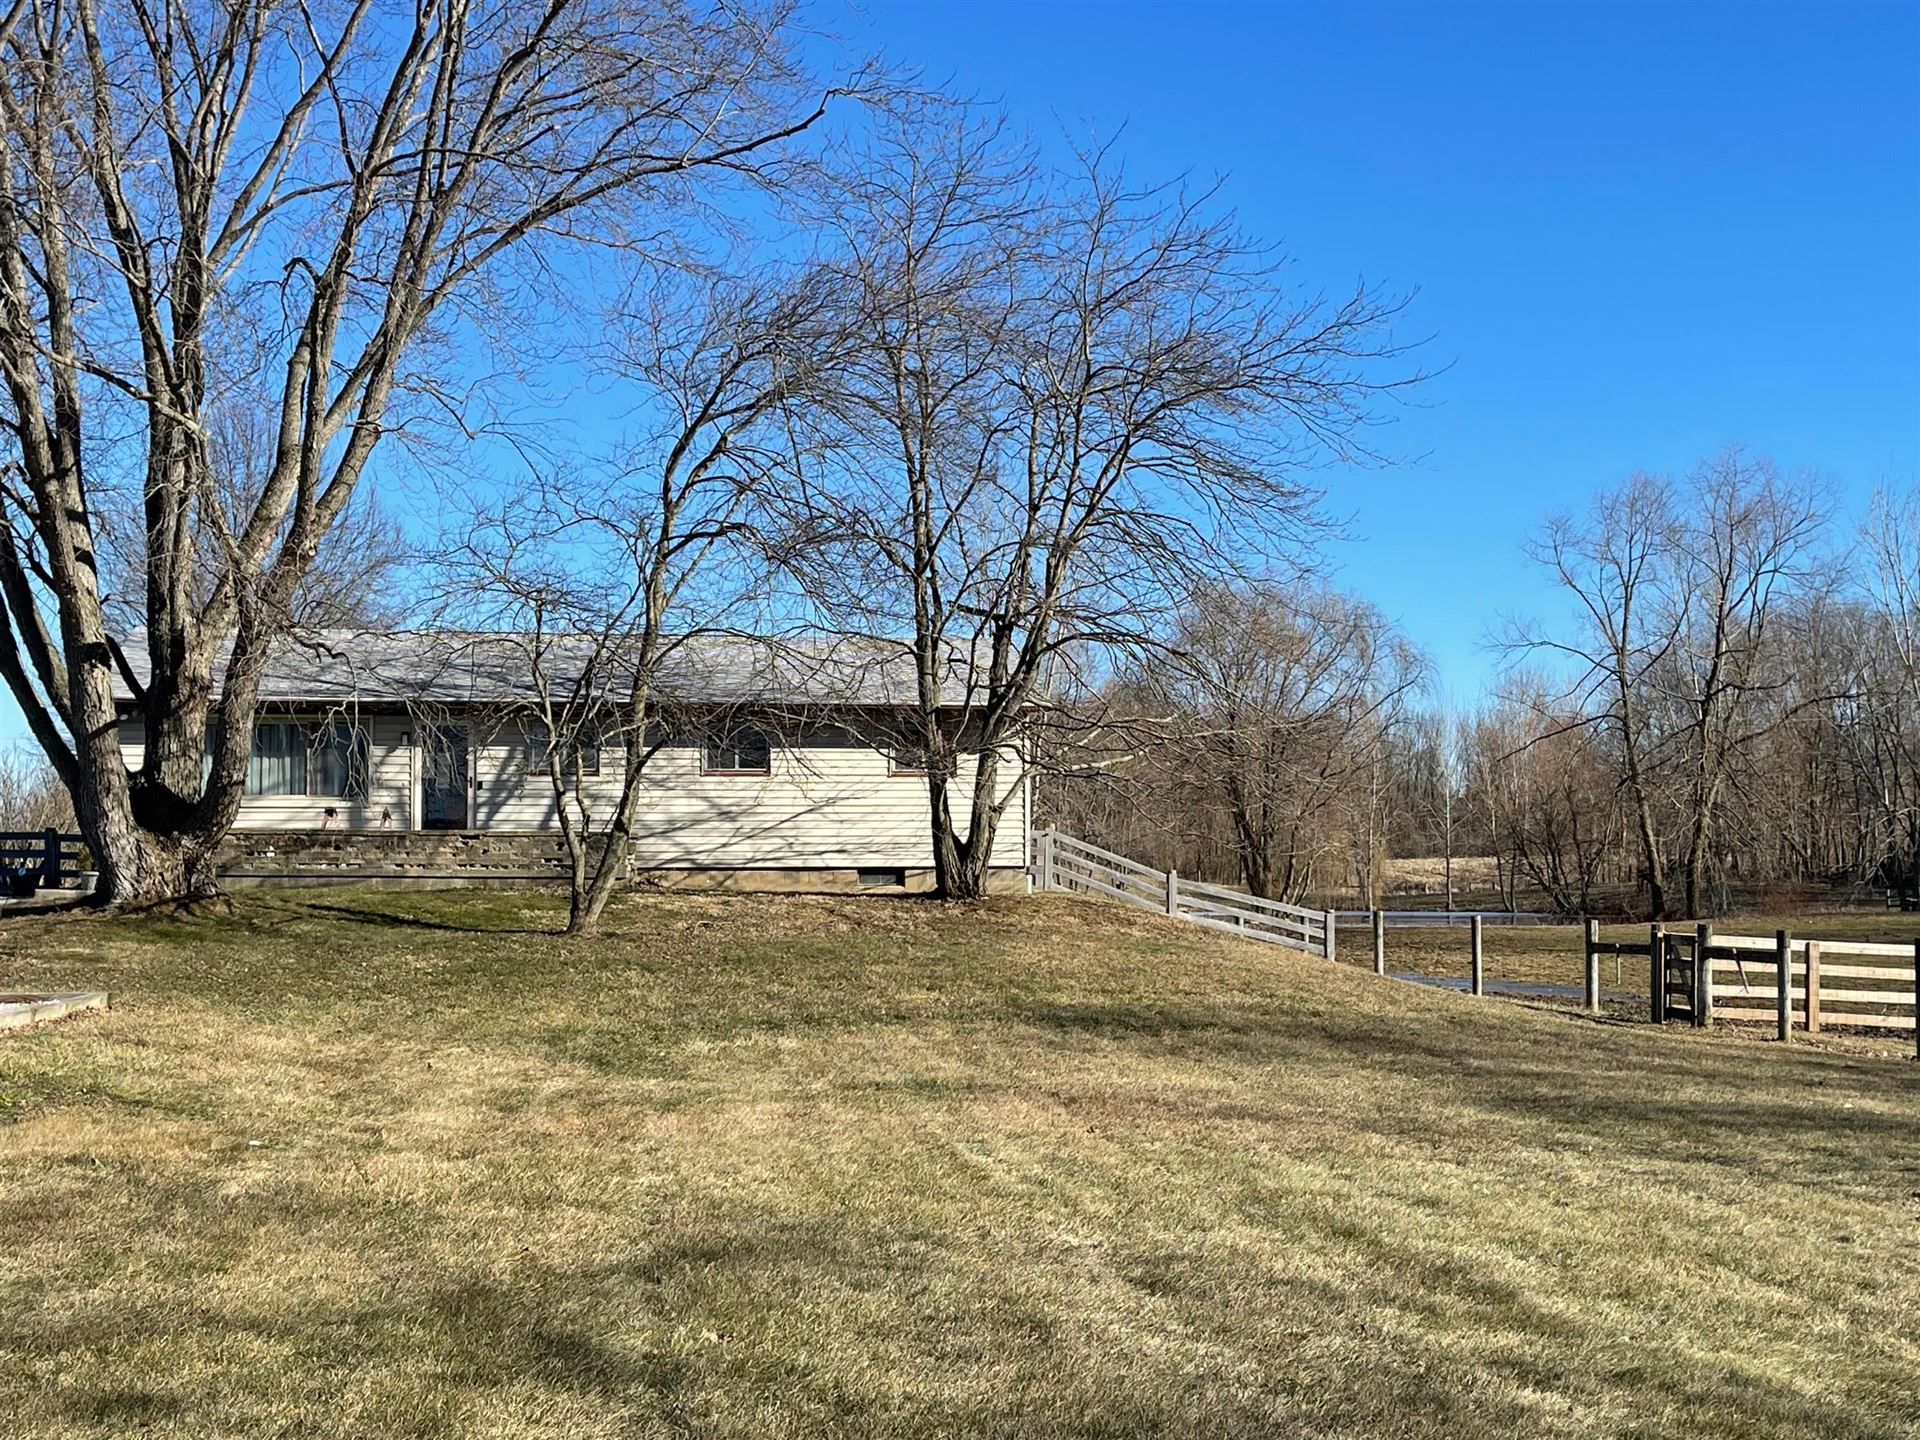 Photo of 4446 Freshwater Road, Delaware, OH 43015 (MLS # 221005873)